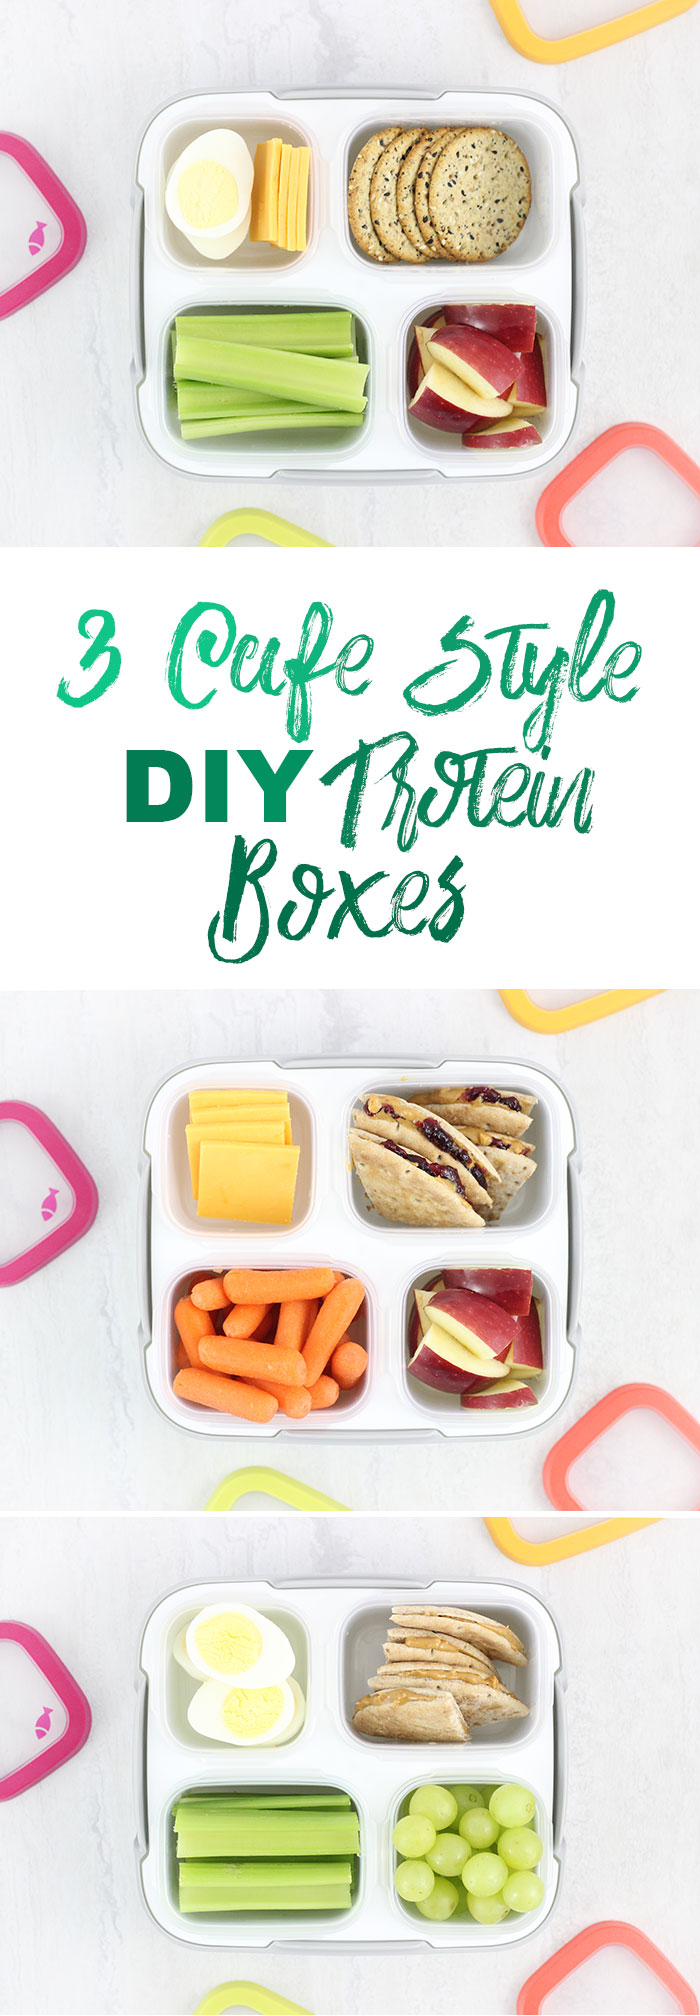 3 DIY Cafe Style Protein Boxes | Cutefetti